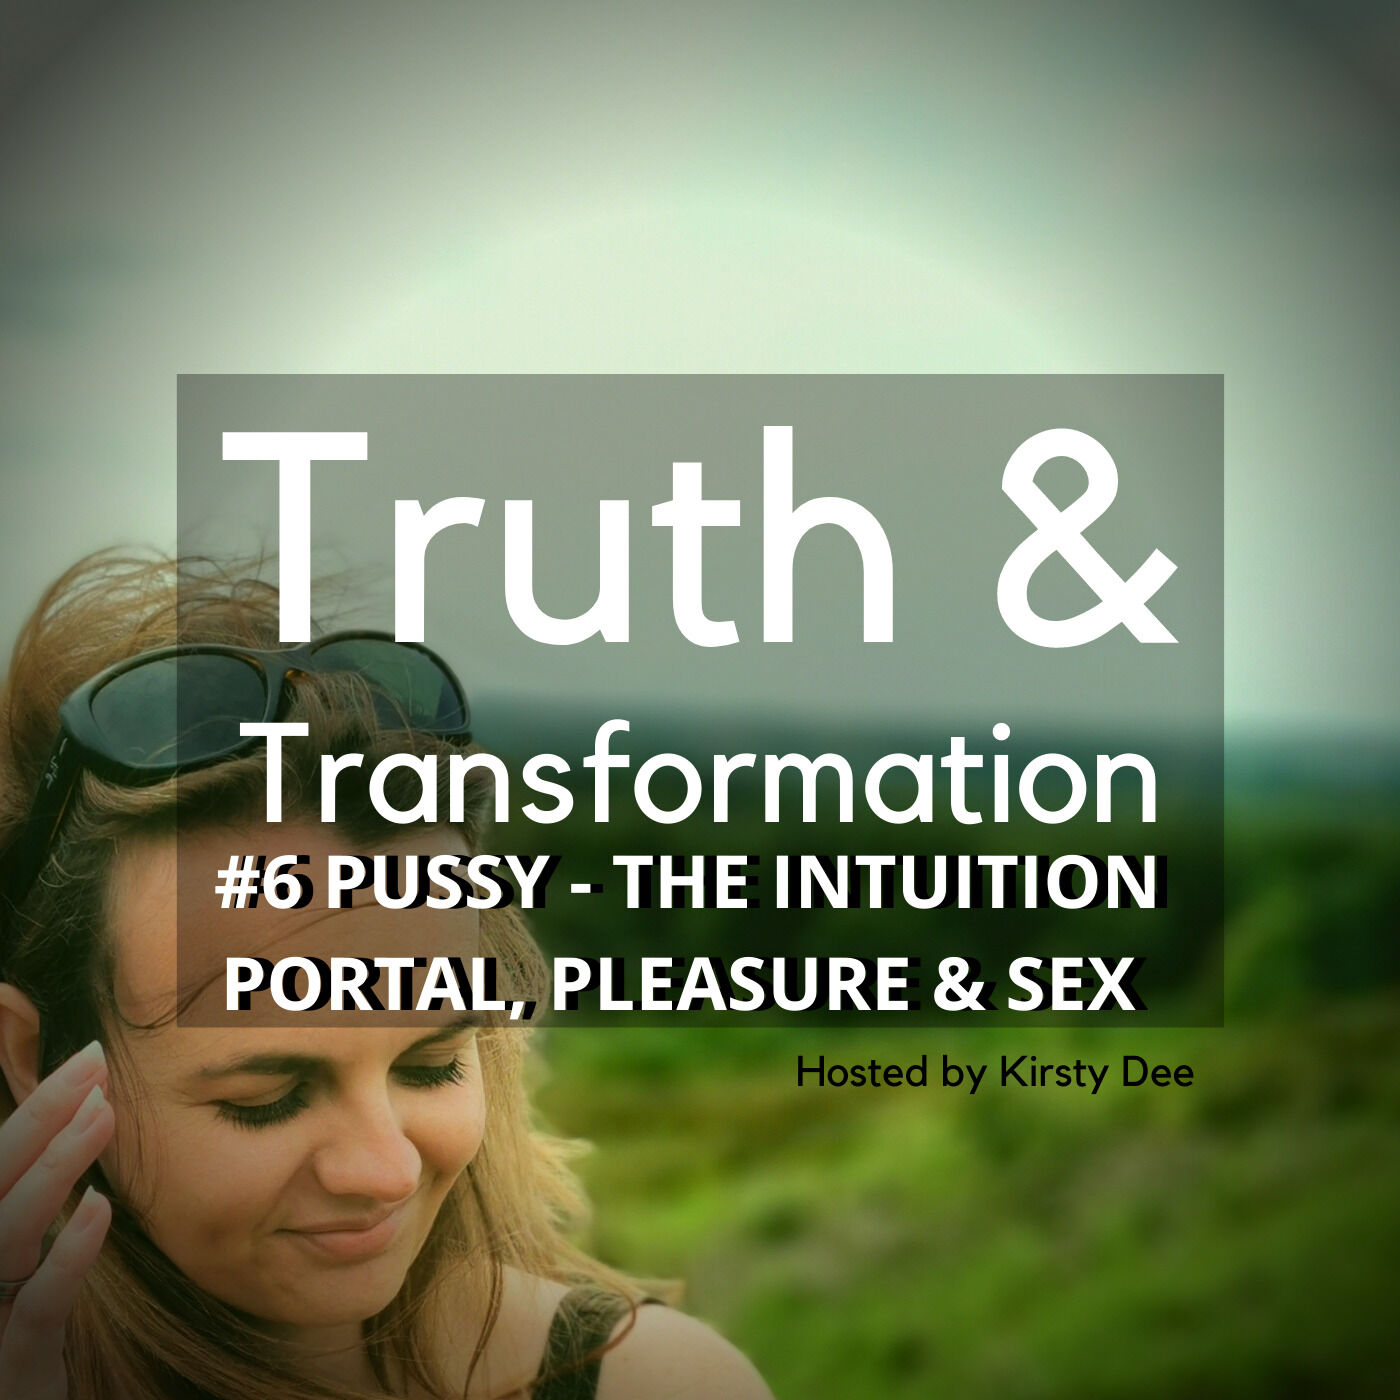 #6 PUSSY - THE INTUITION PORTAL, PLEASURE & SEX